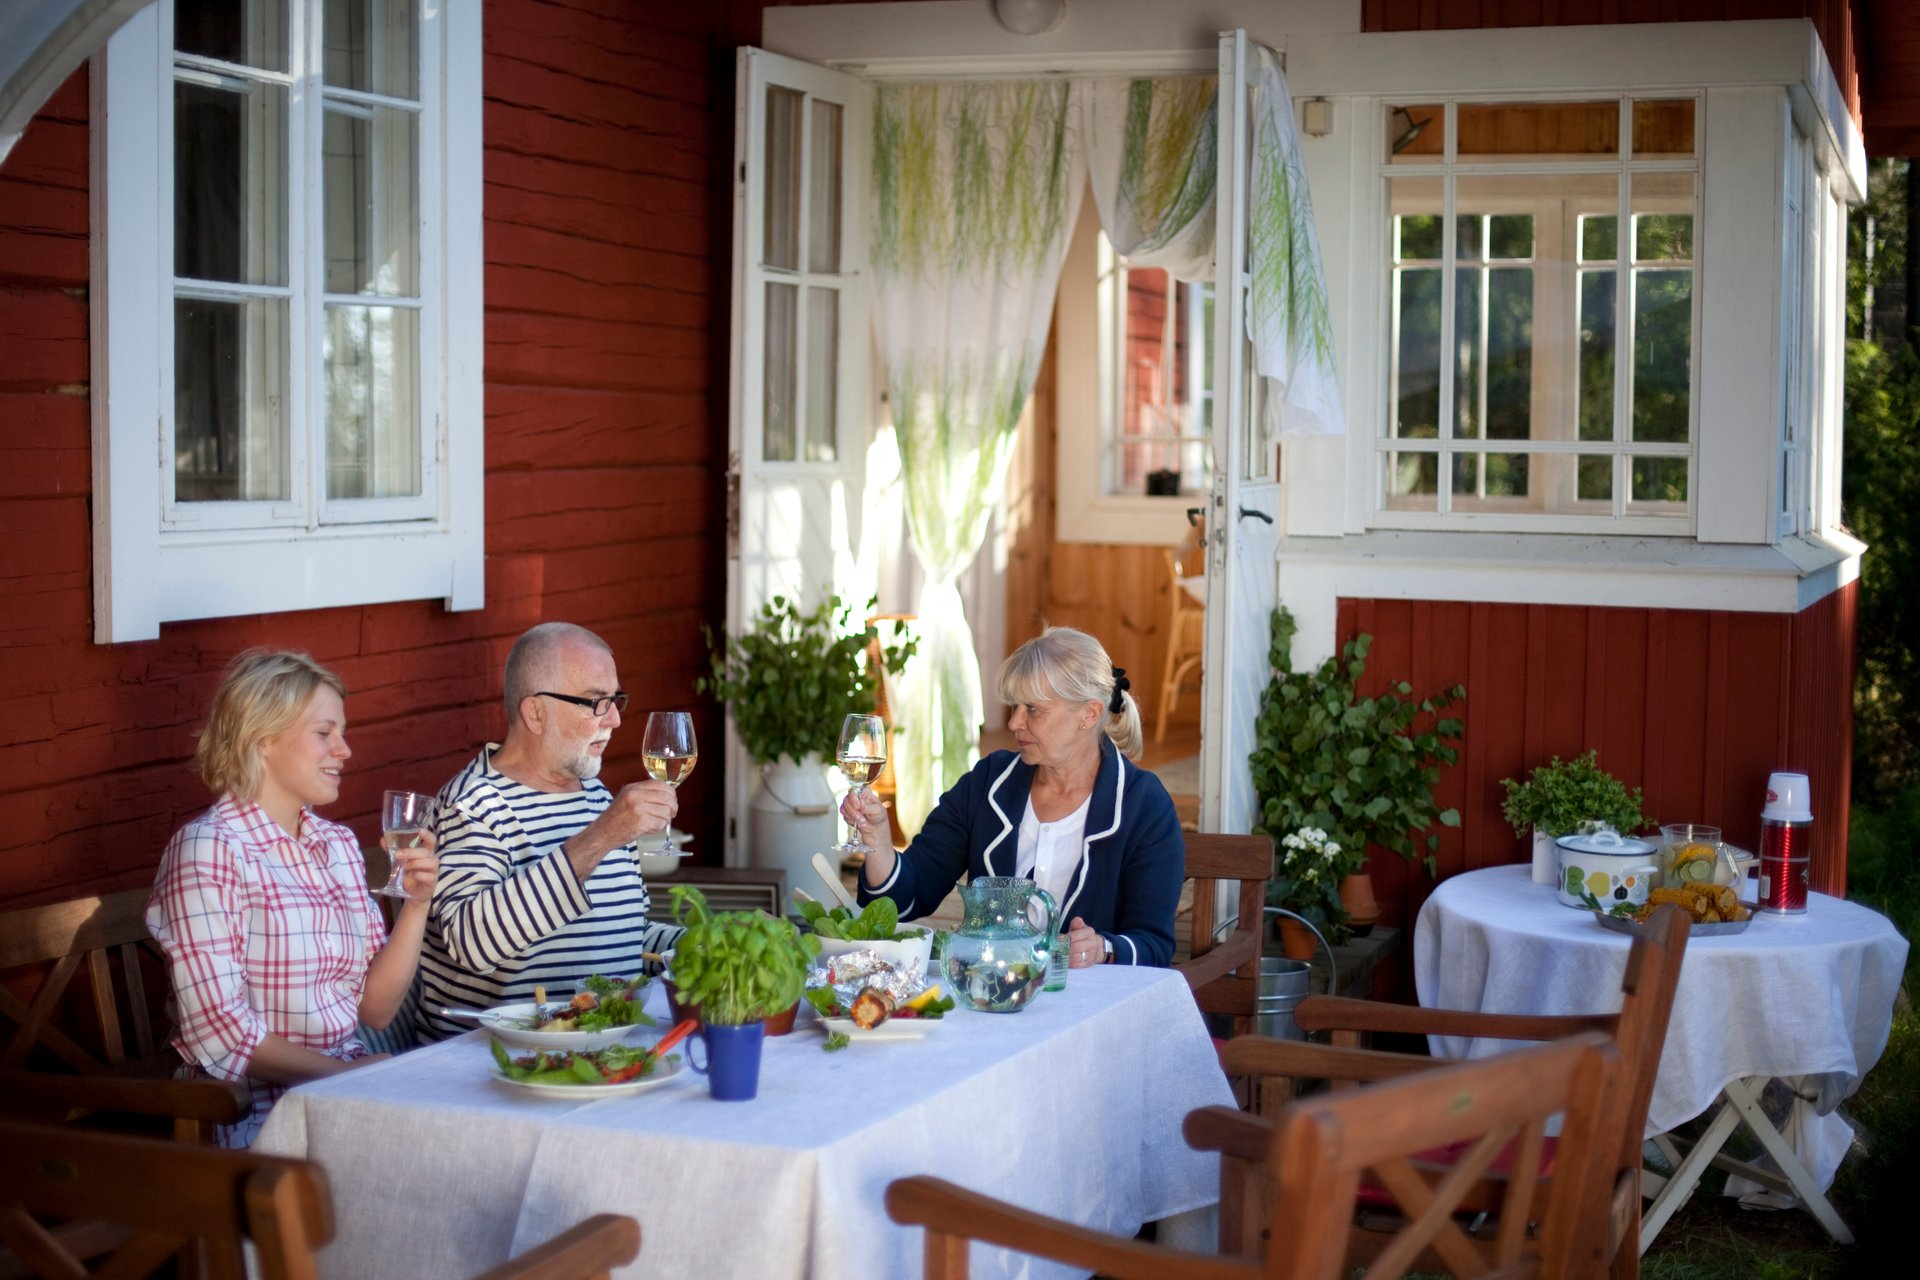 Juhannus (Midsummer) in Finland - Best Season 2020